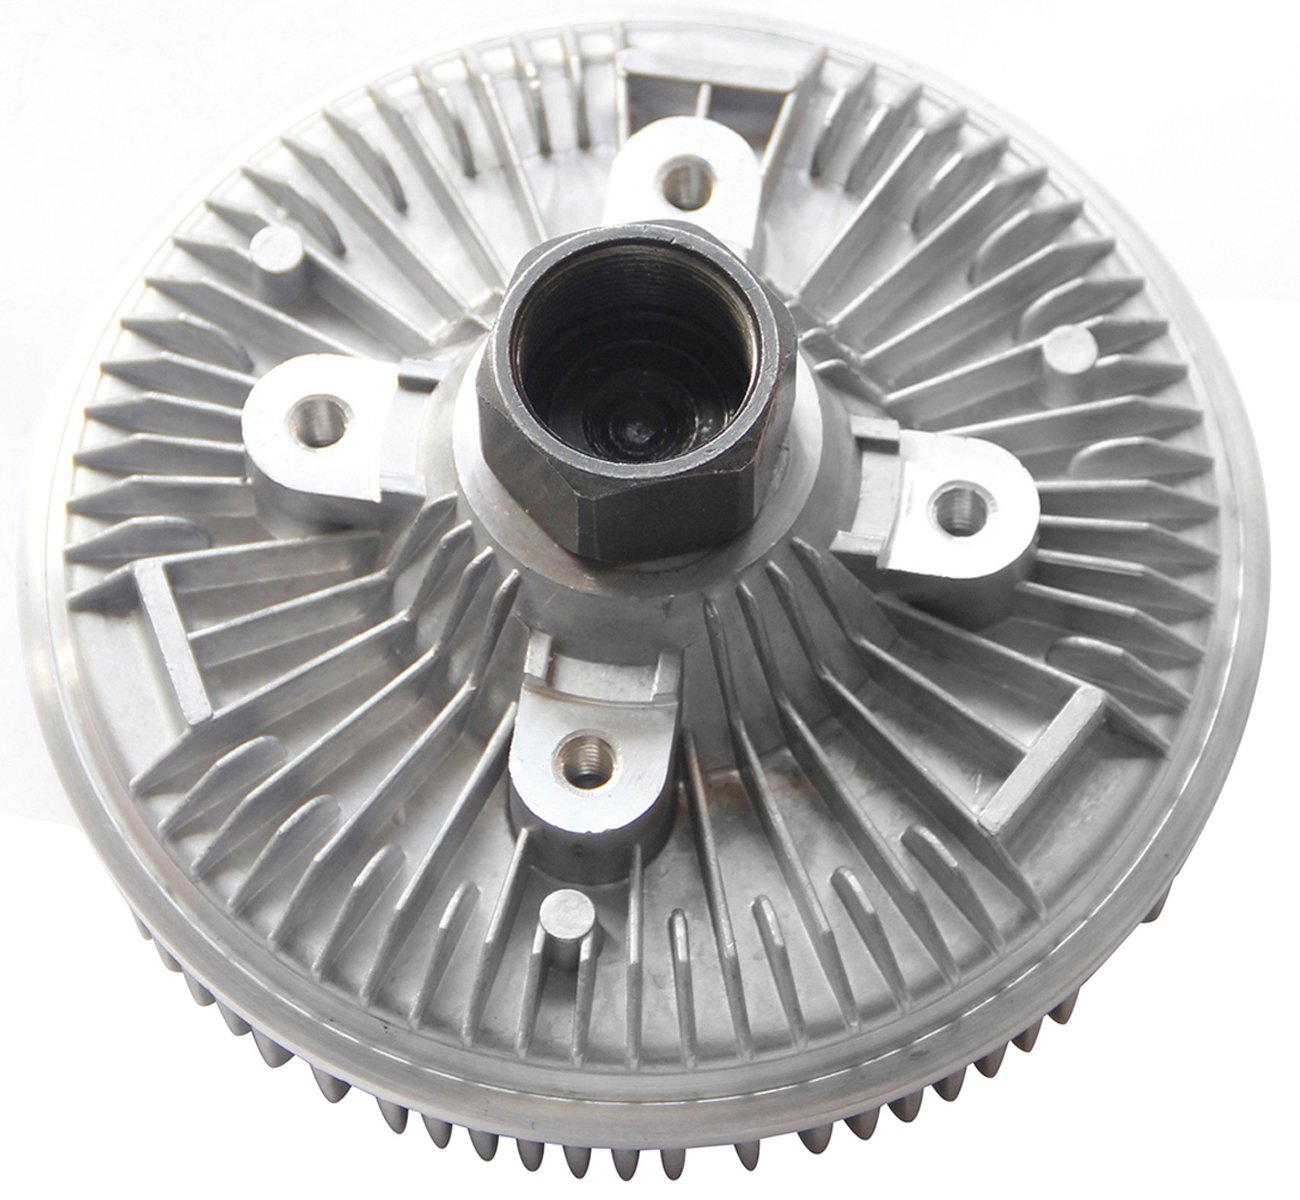 hight resolution of get quotations topaz 2790 cooling fan clutch for dodge 3 9l 5 2l 5 9l